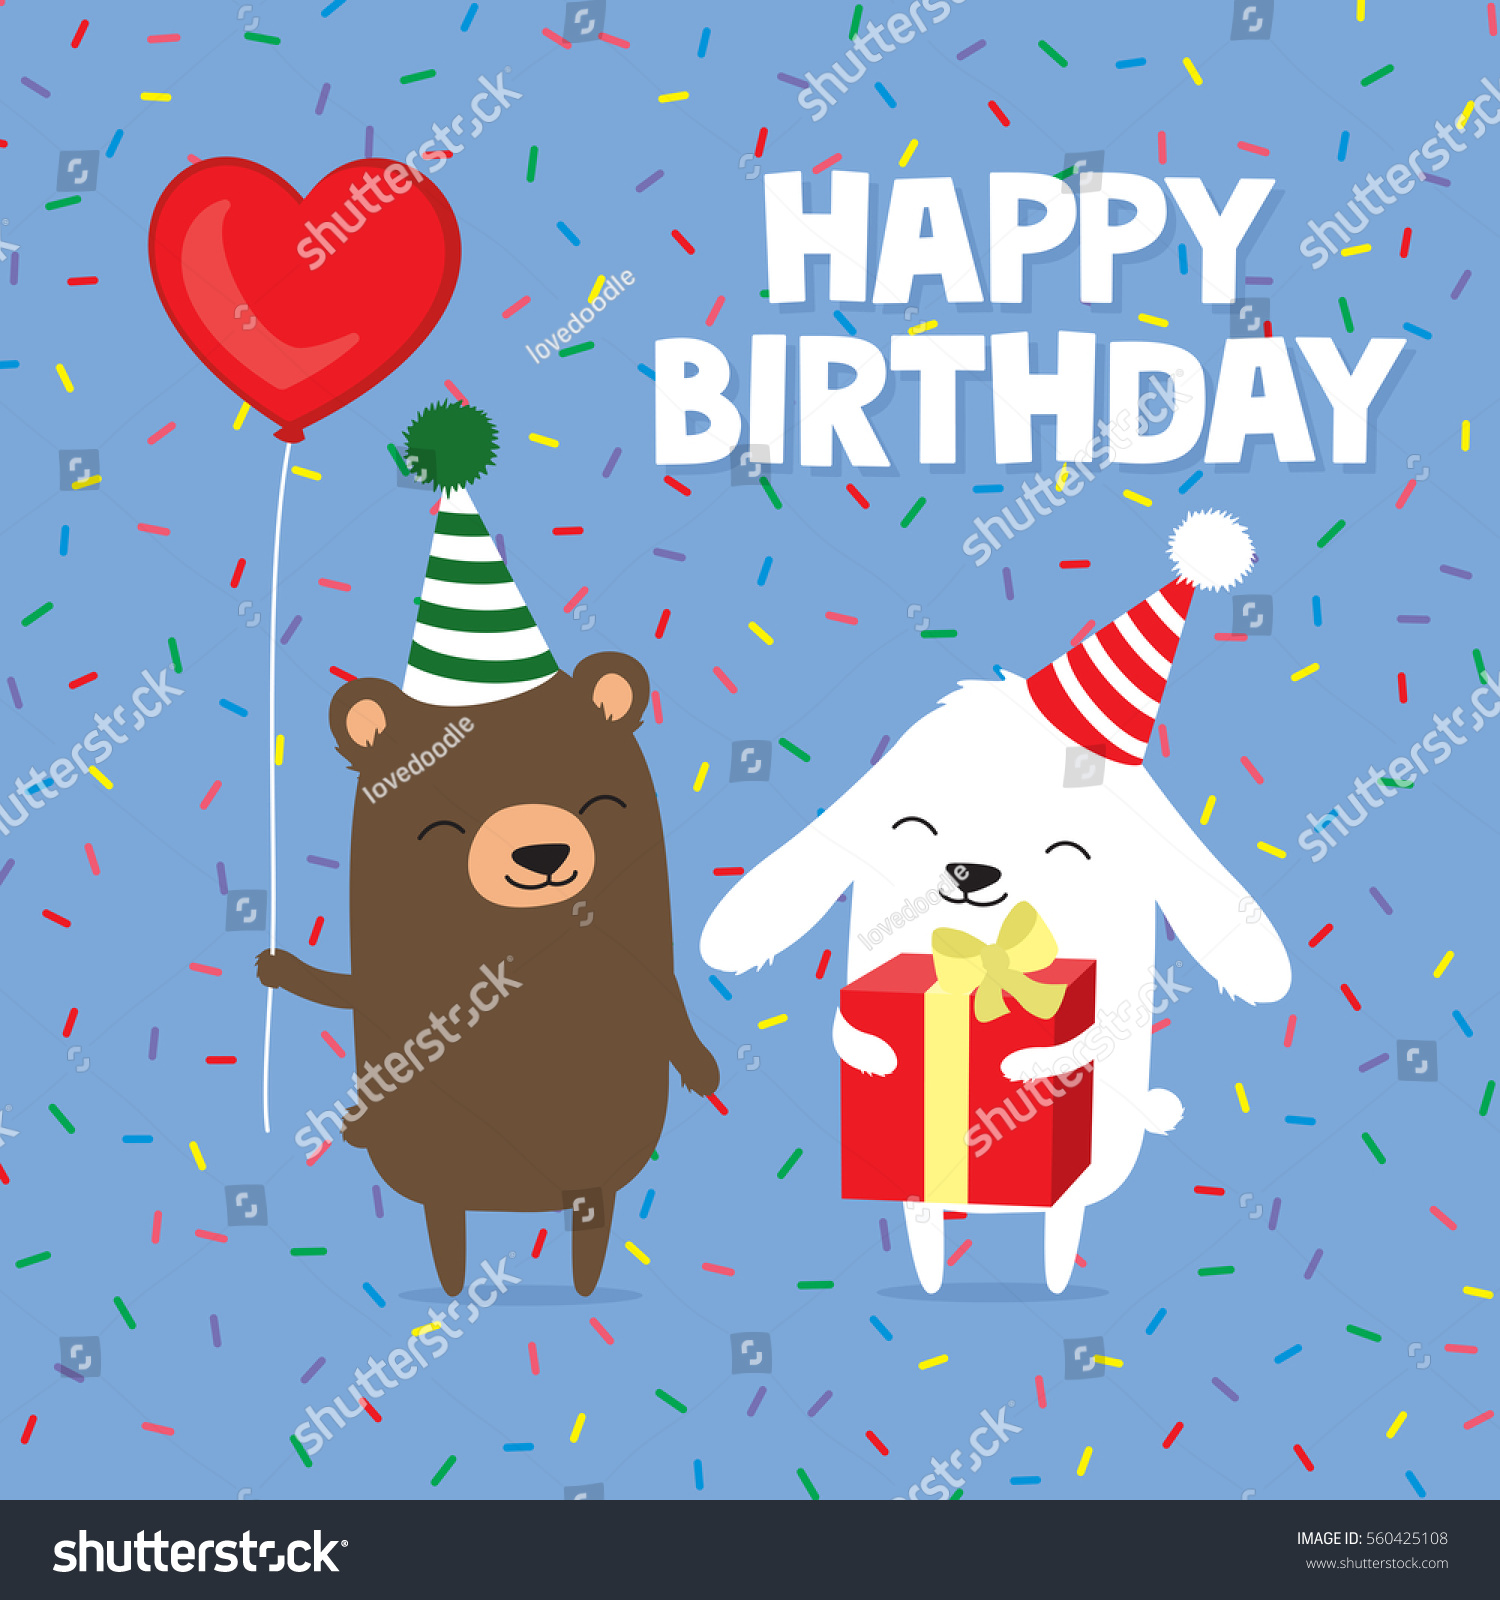 Birthday Greeting Card Cute Cartoon Bear Stock Illustration